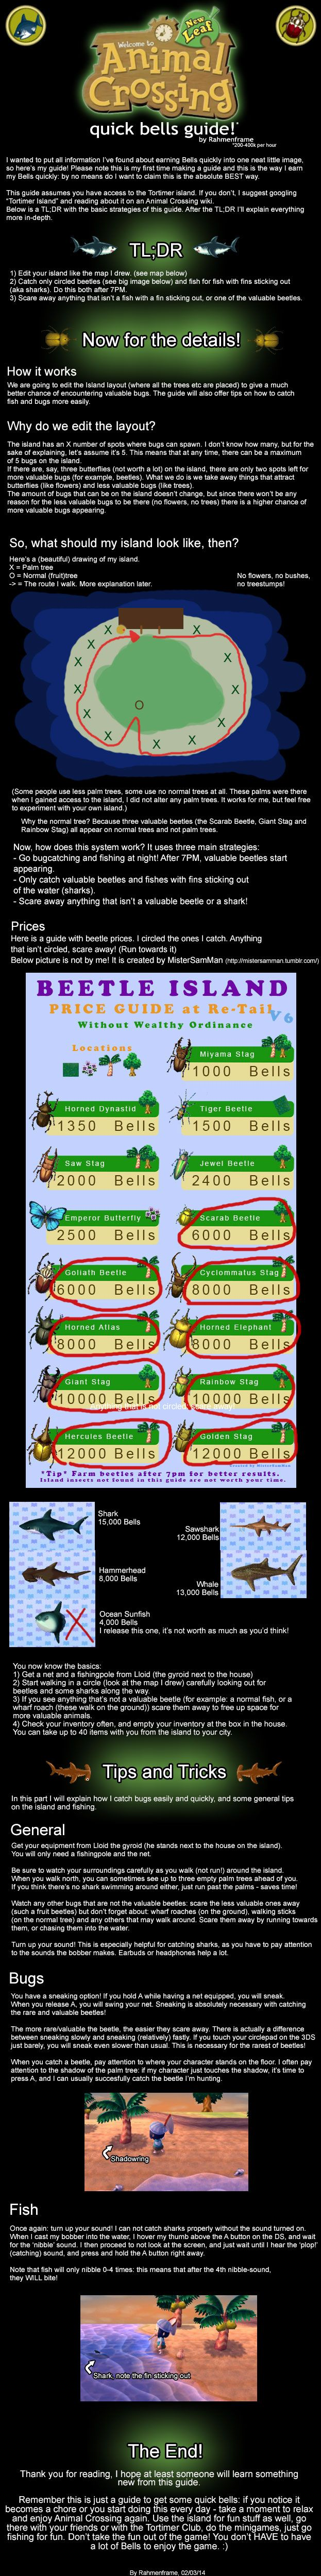 [GUIDE] How to earn 200-400k Bells an hour in New Leaf!